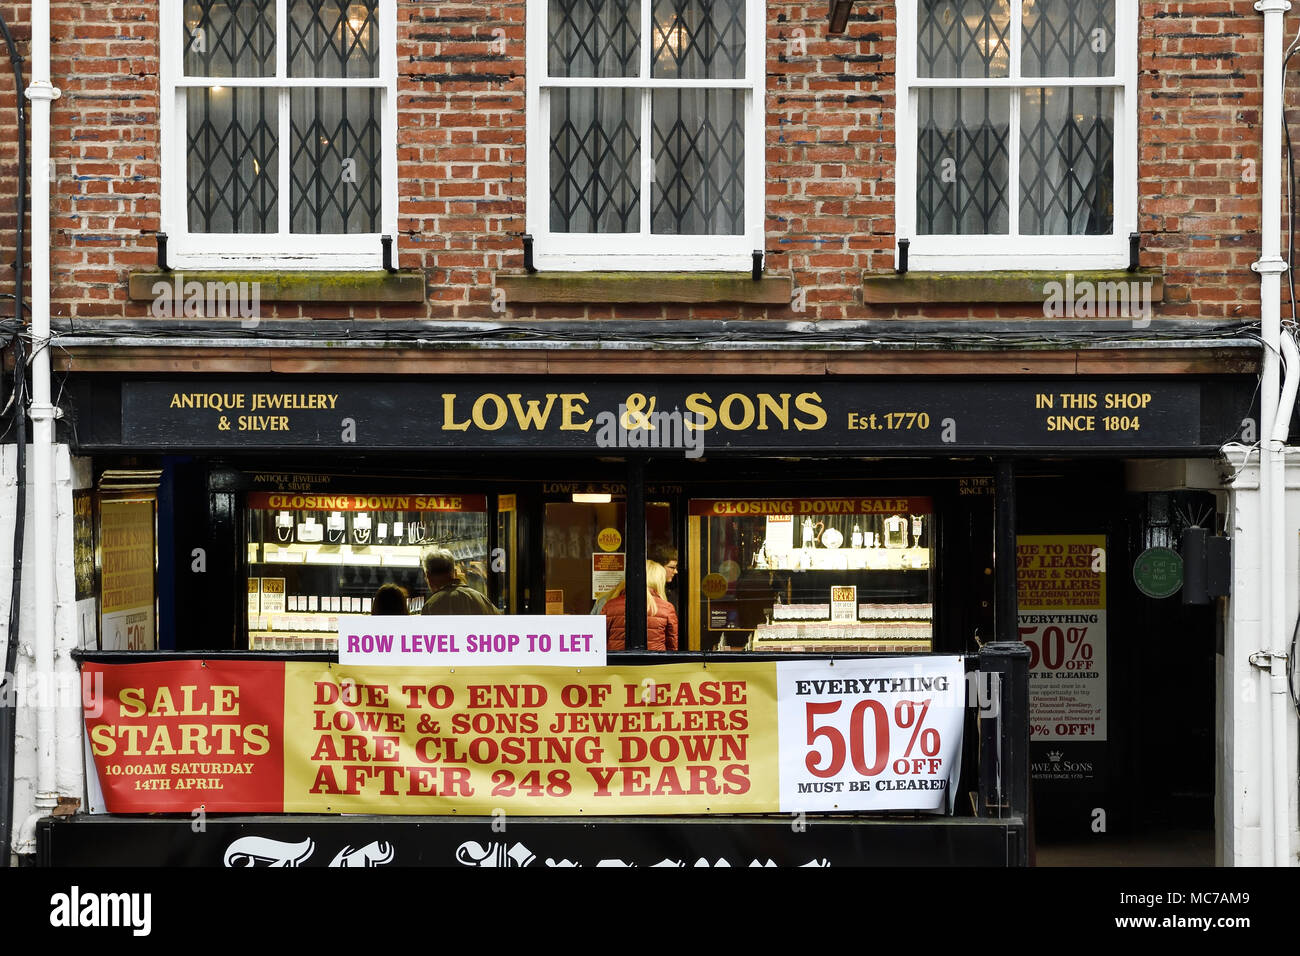 Chester, UK. 13th April 2018. The exterior of Lowe and Sons jewellery shop on Bridge Street Row. A 50% closing down sale starts at 10am tomorrow, Saturday 14th April. The company has been trading for 248 years and is thought to be the second oldest independent jewellers in the country and the oldest shop still trading in Chester. They have been at their current location since 1804. Credit: Andrew Paterson/Alamy Live News - Stock Image